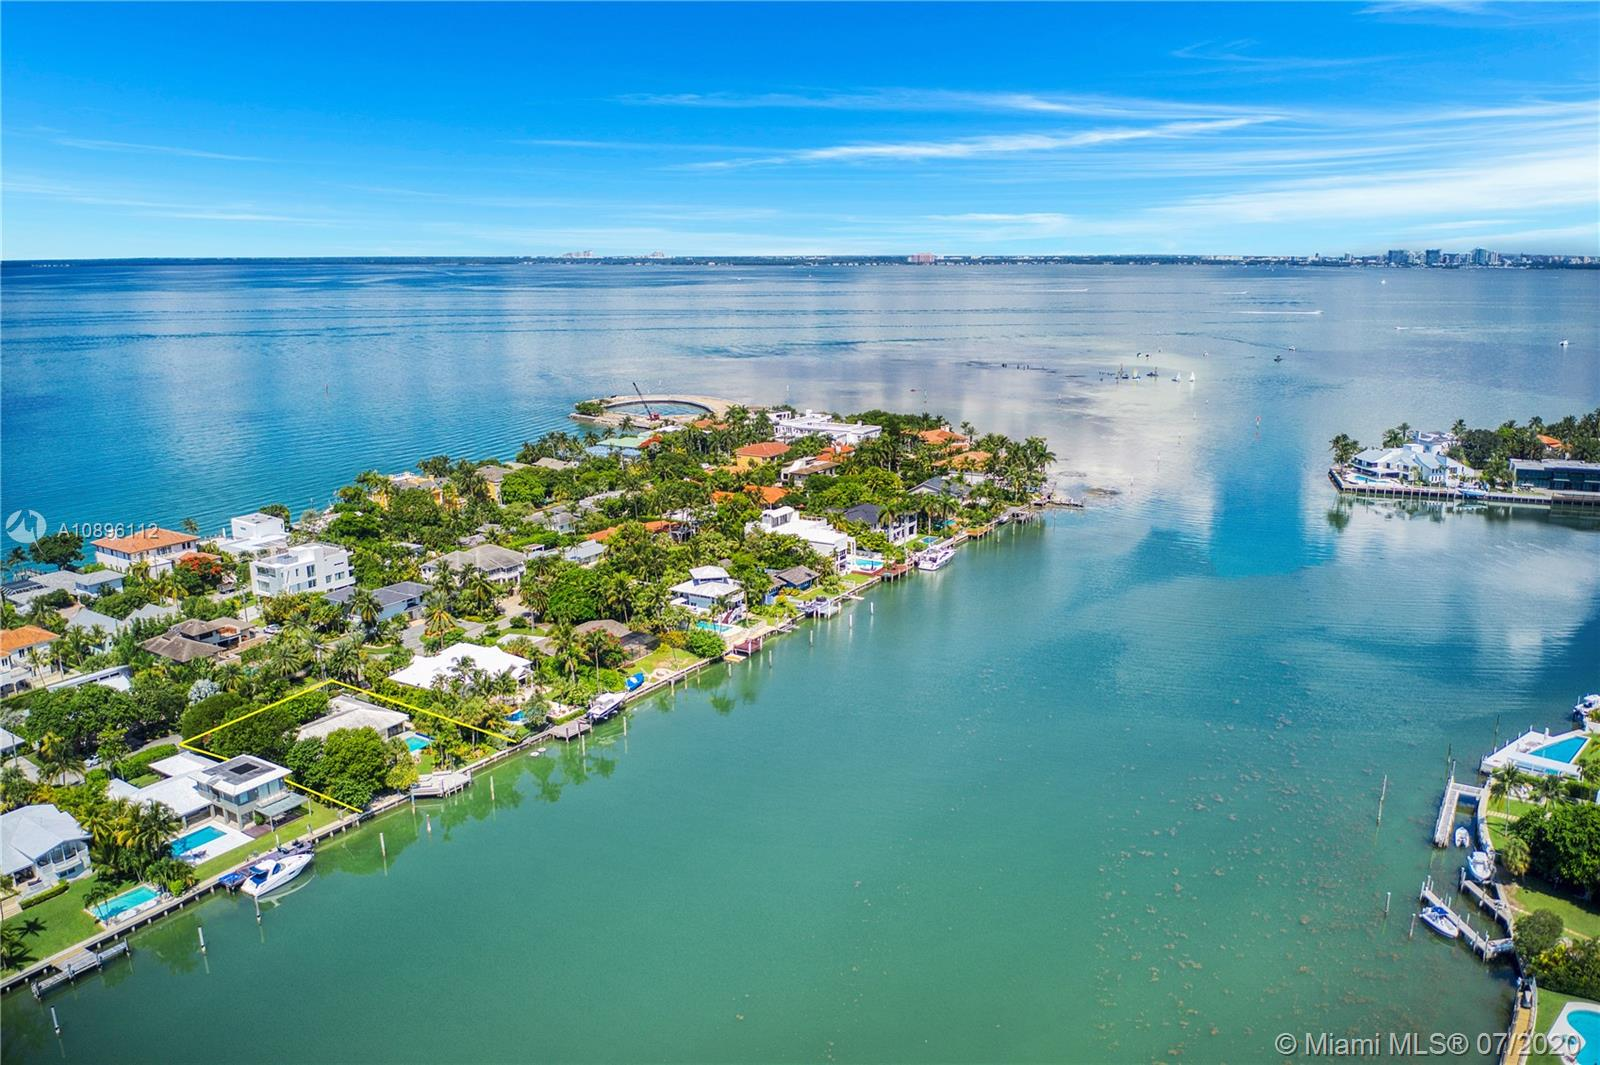 Charming waterfront home with 4 bed, 4 bath plus staff quarters.  Overlooking Key Biscayne's Hurricane Harbor.  15,080 lot with 104 feet of water frontage. Great location for boat enthusiast.  Situated on the widest part of the protected harbor features boat Davits and an oversized dock.  Fantastic opportunity to transform this spacious home or build a tropical dream home on North Mashta Island. Living areas include two dens, separate dining and living room. Exterior features include covered patio, heated swimming pool. Full house generator included in sale.